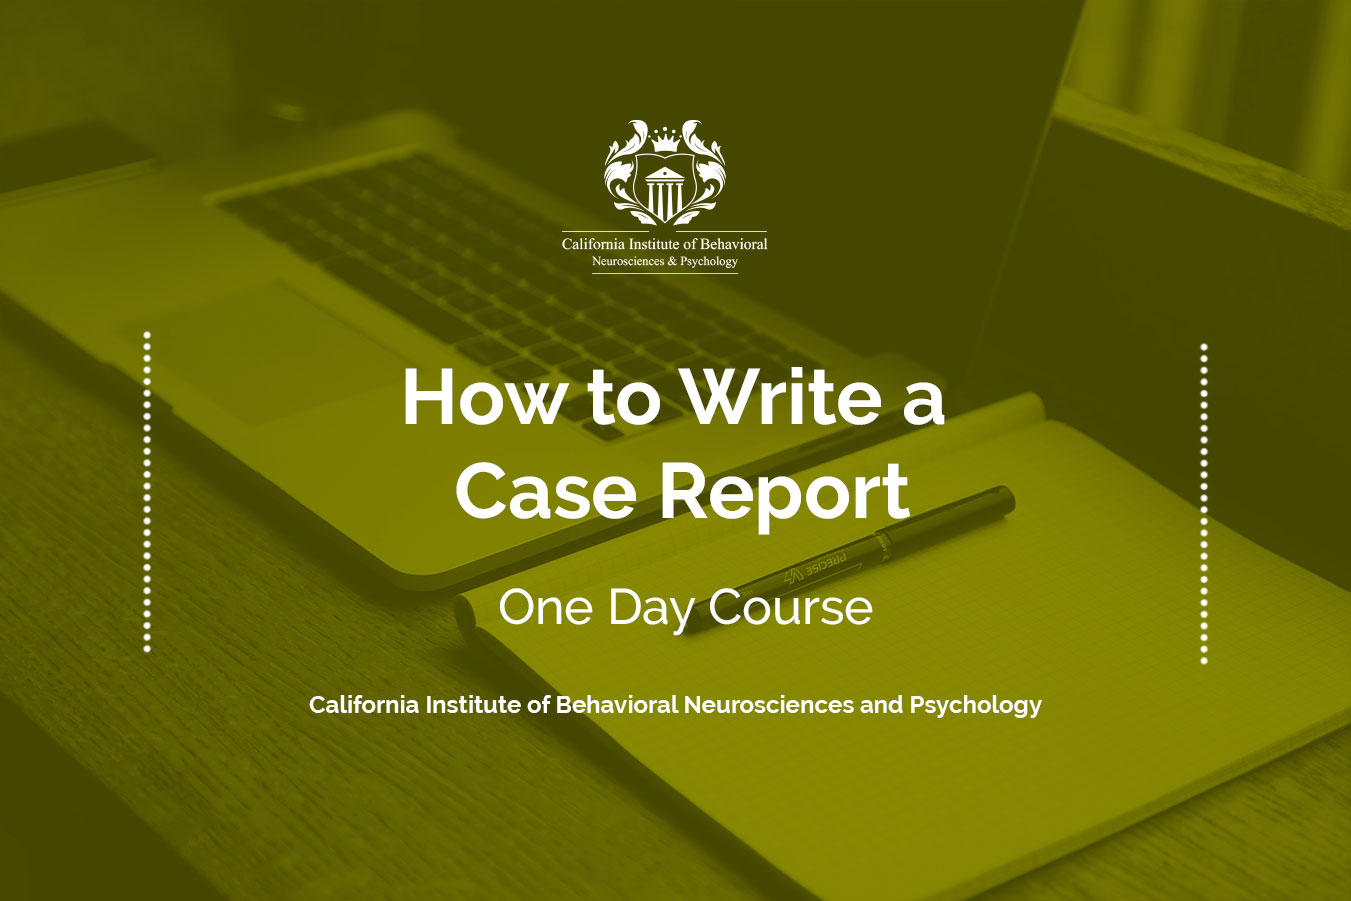 How-to-Write-a-Case-Report